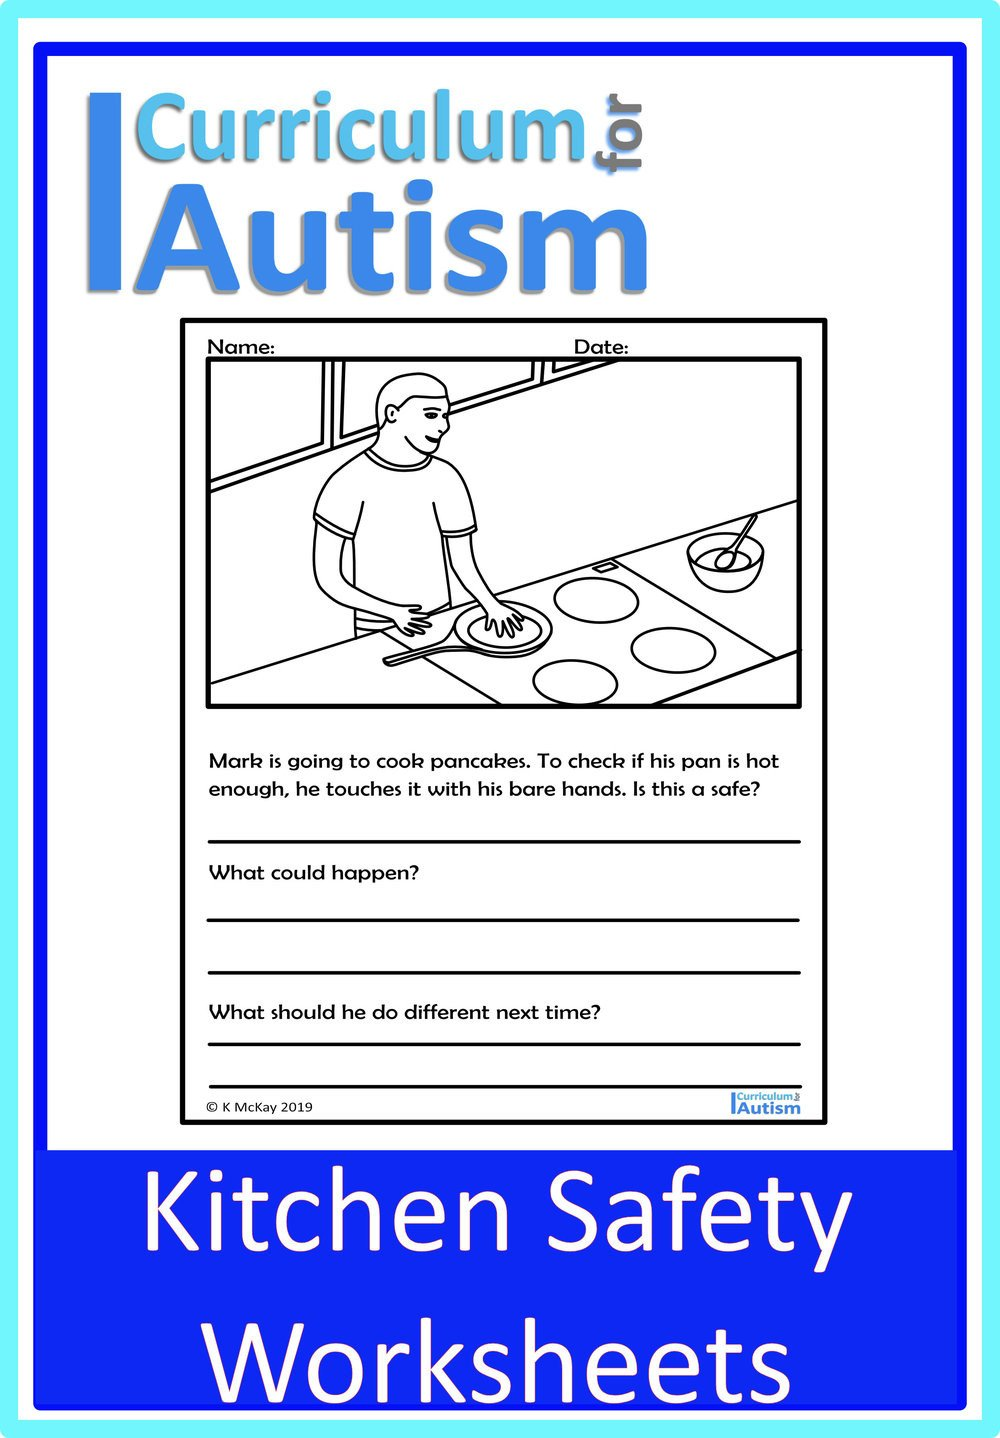 Autism Life Skills Worksheets Kitchen Cooking Safety Worksheets — Curriculum for Autism